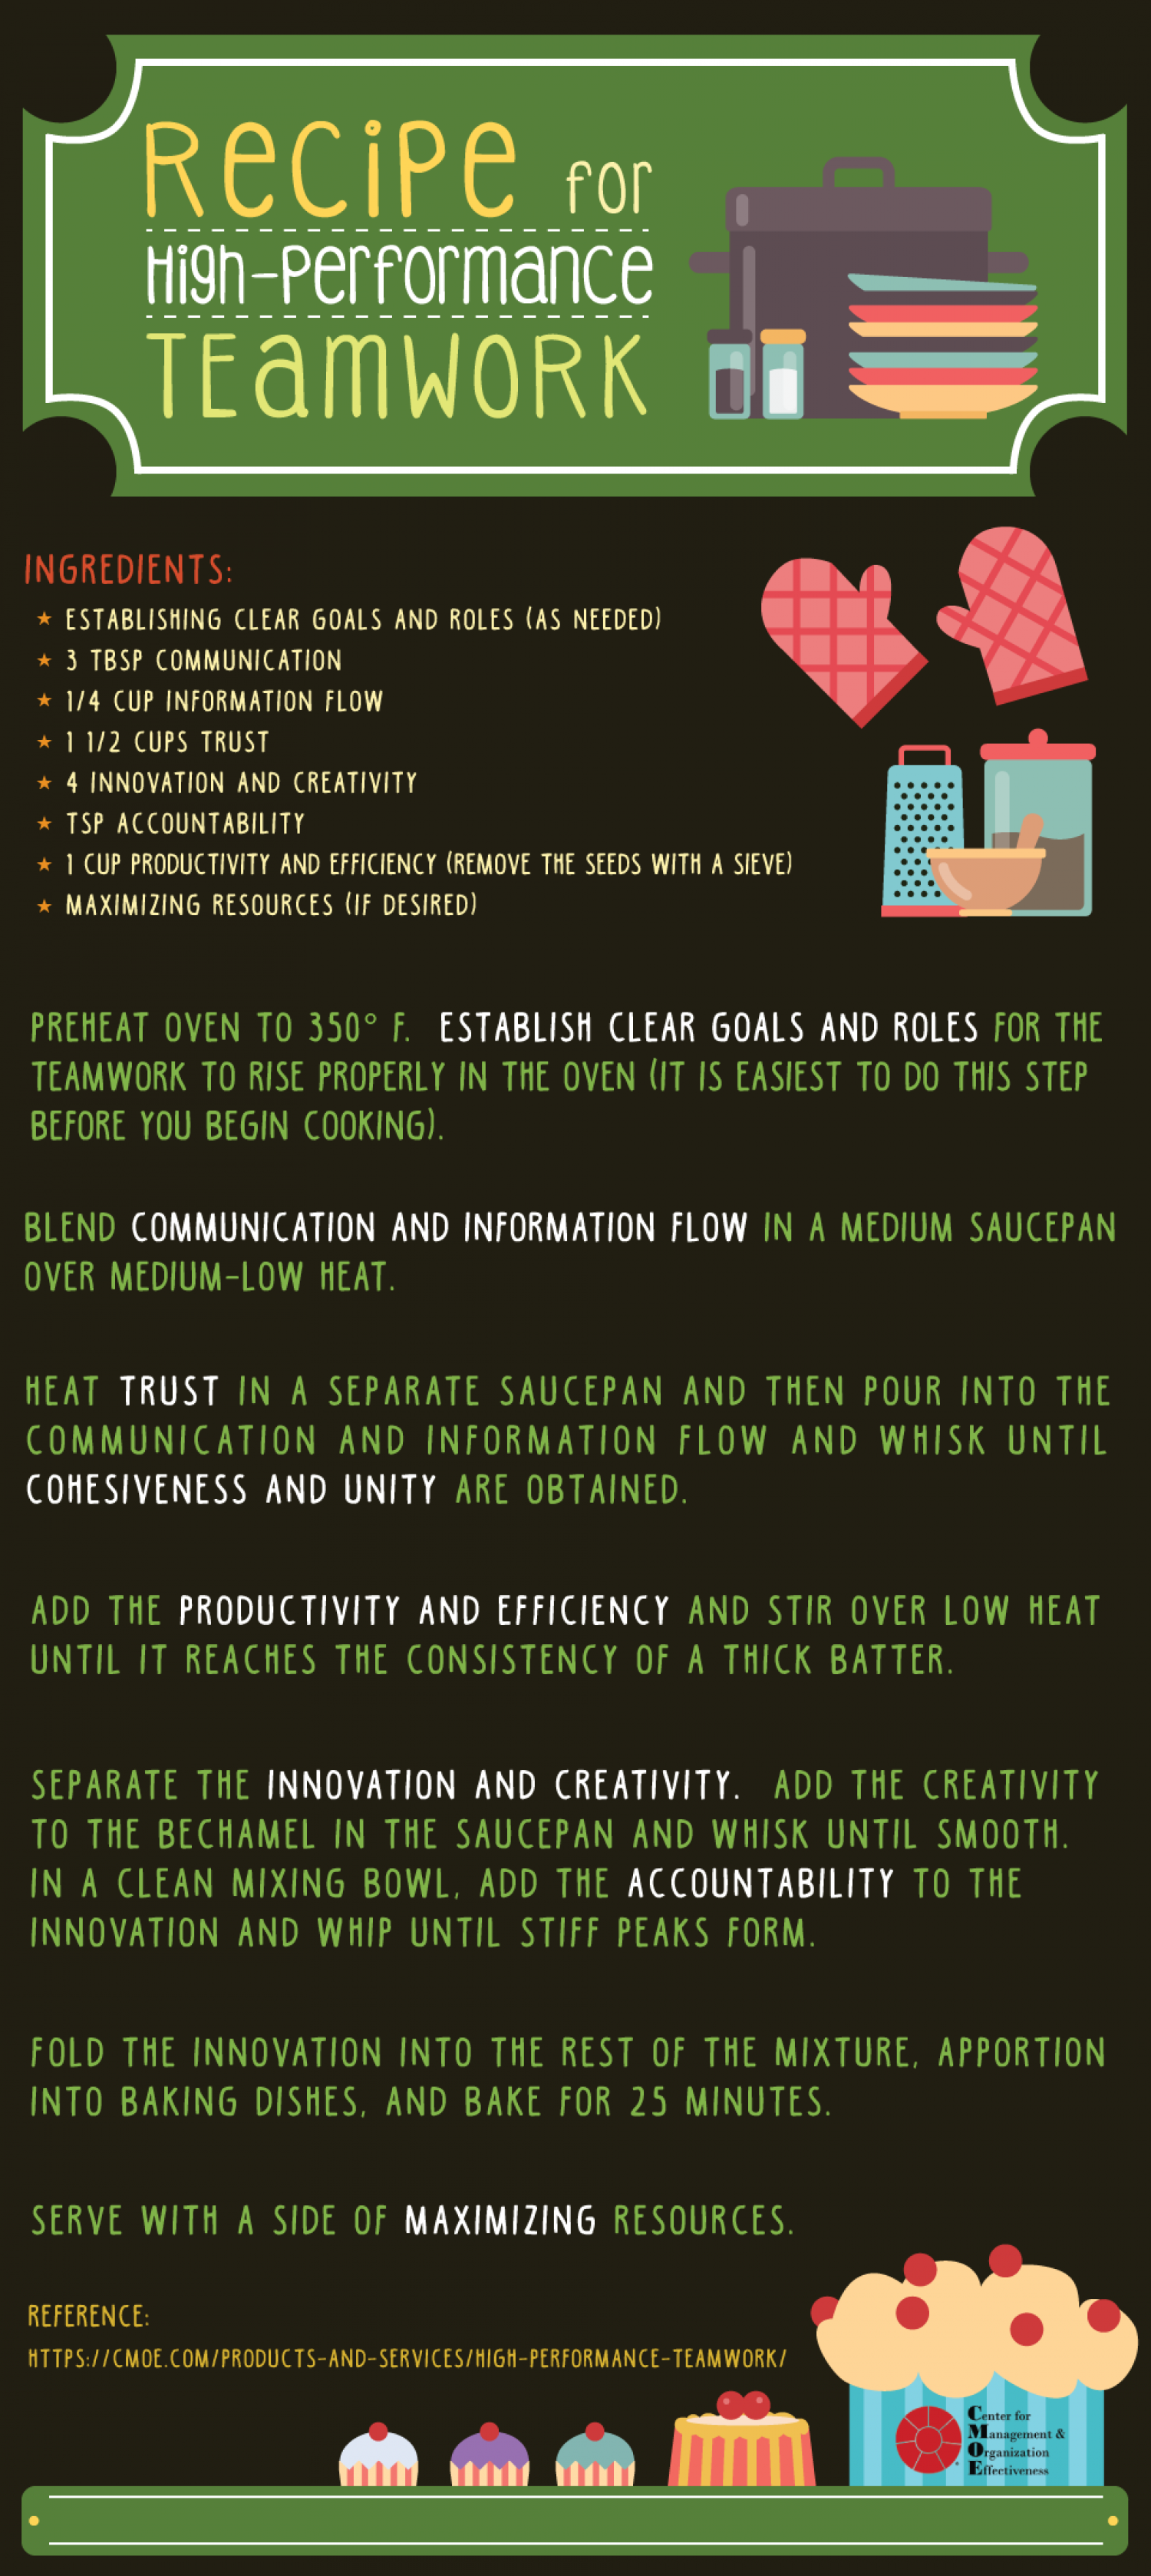 Recipe For High-Performance Teamwork Infographic